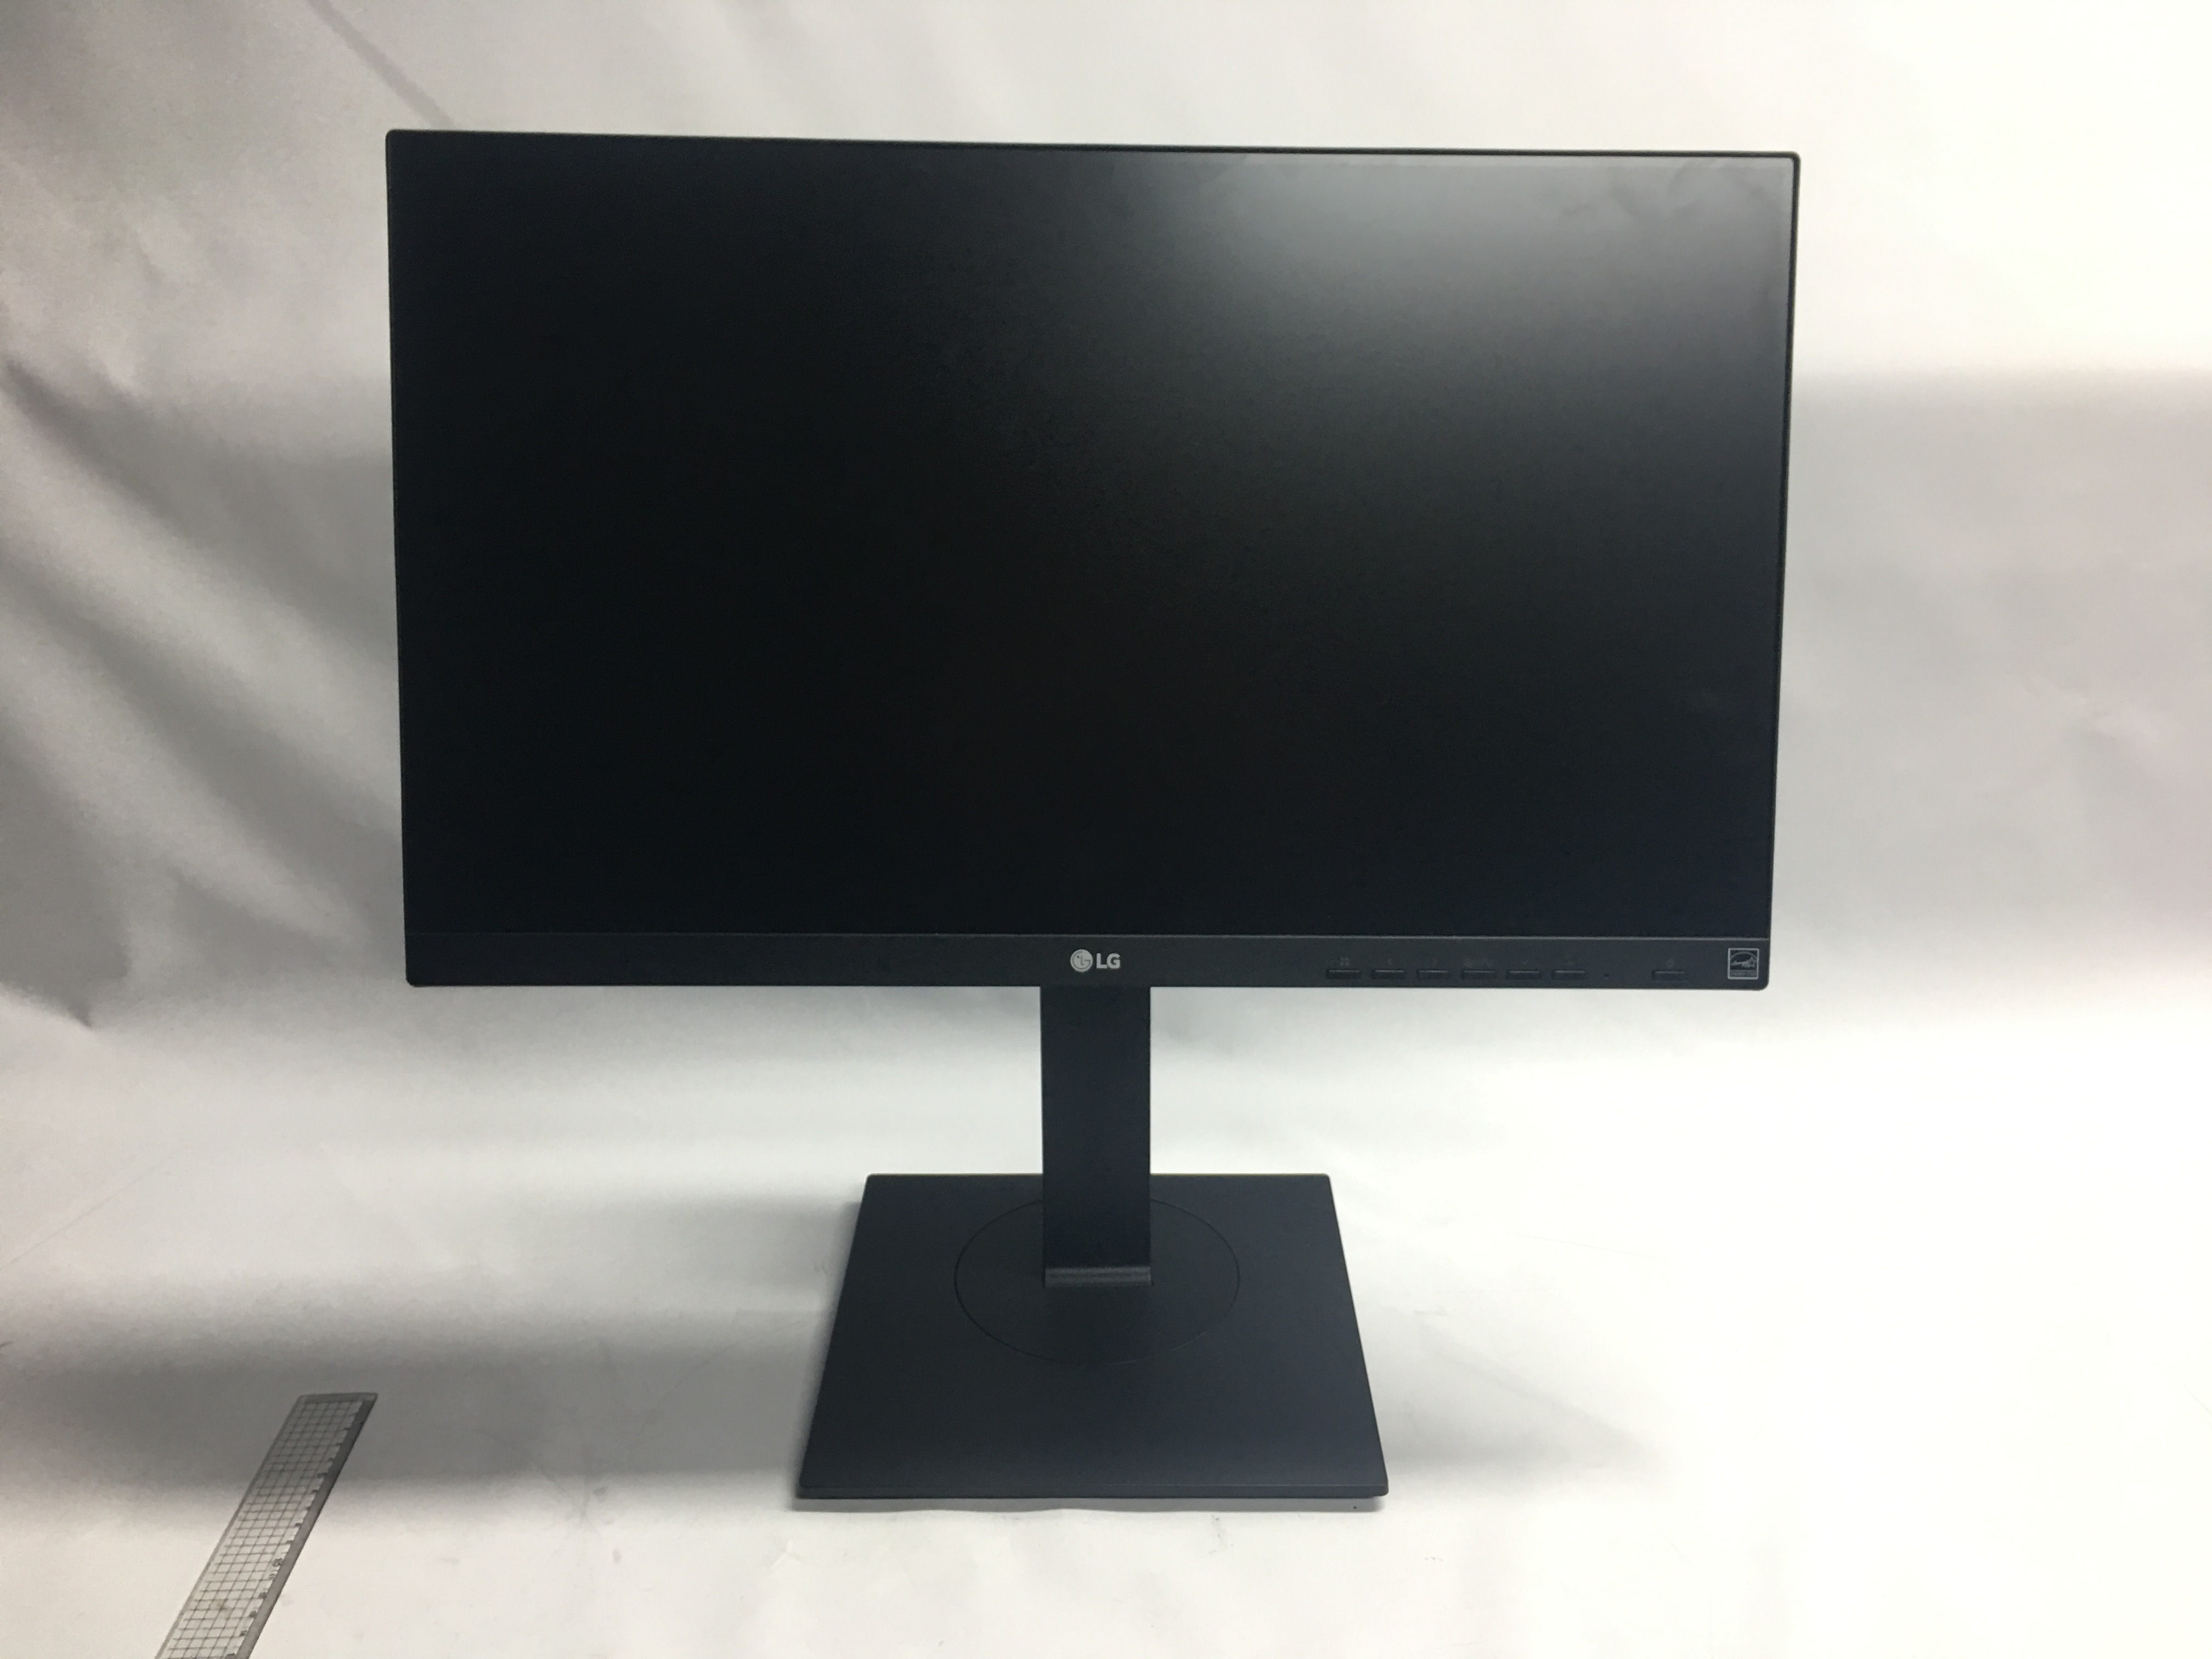 LED Monitor image